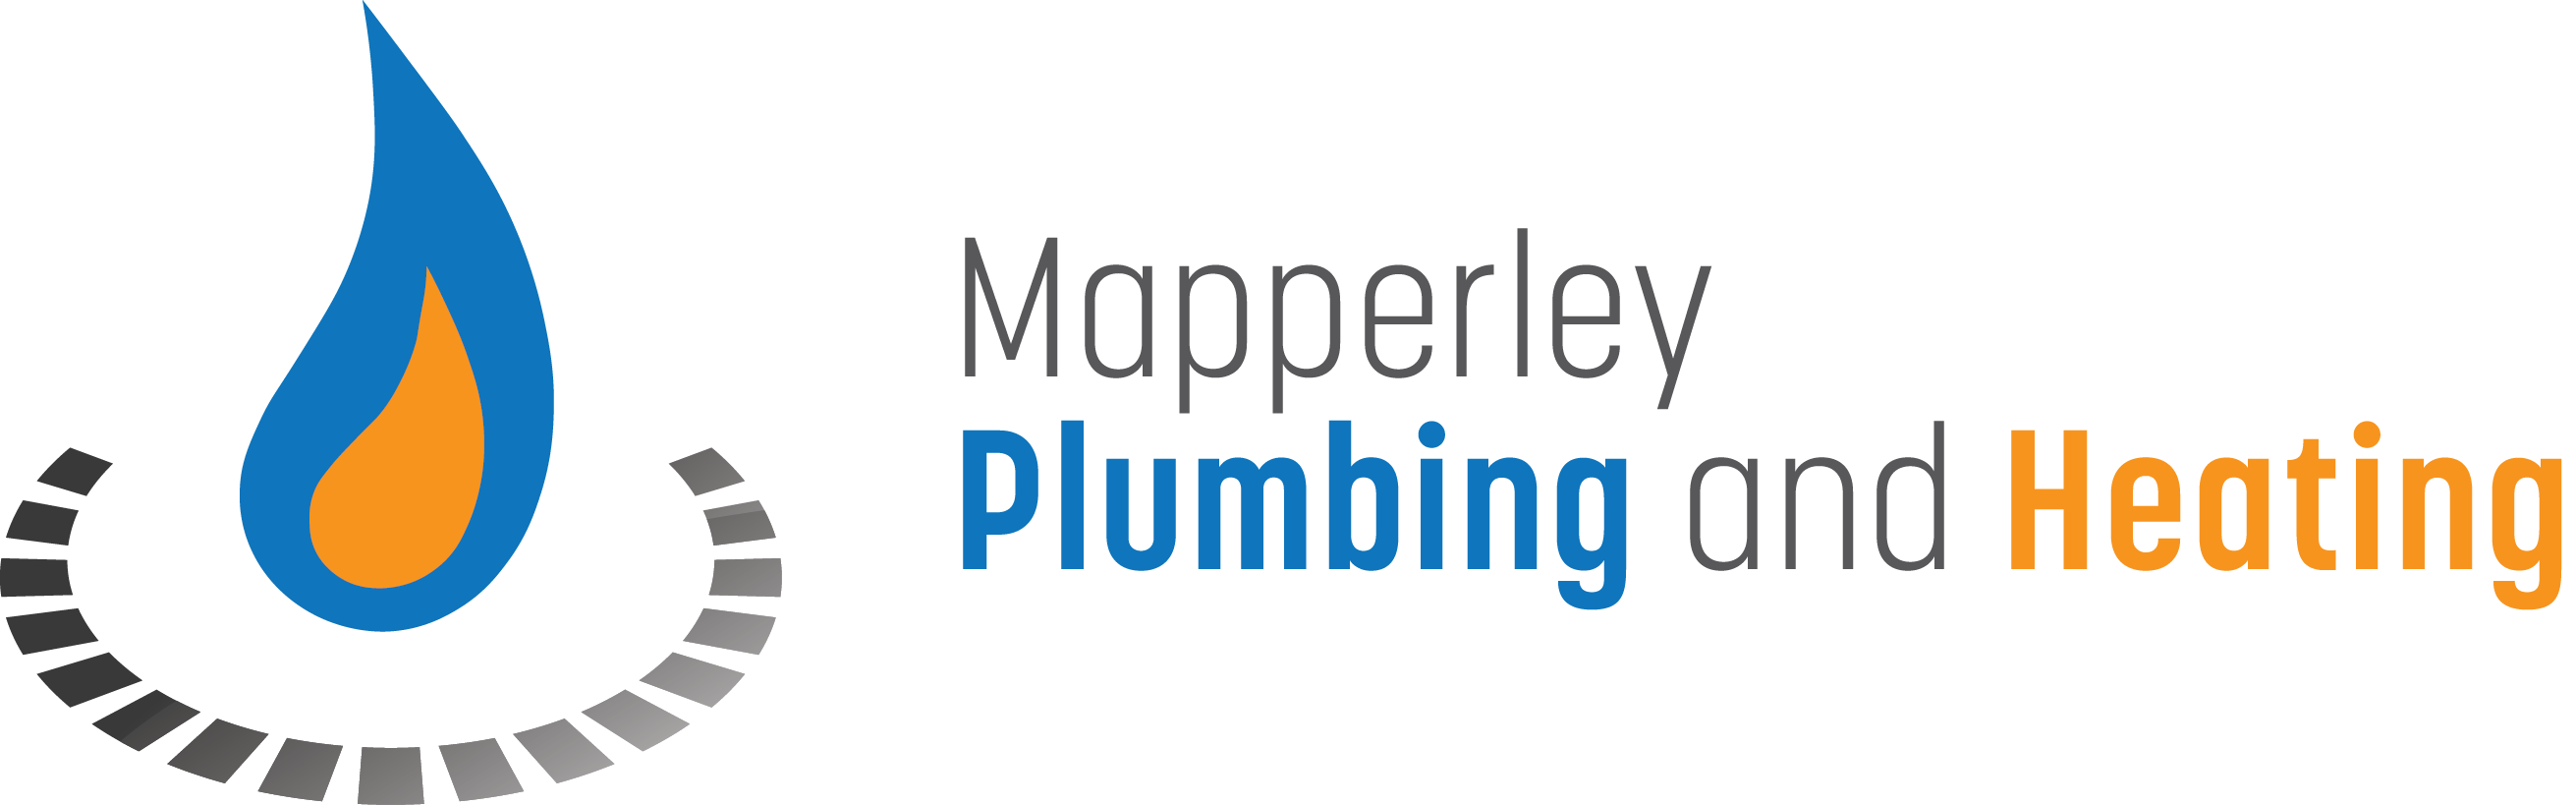 Plumbing and heating services Nottingham